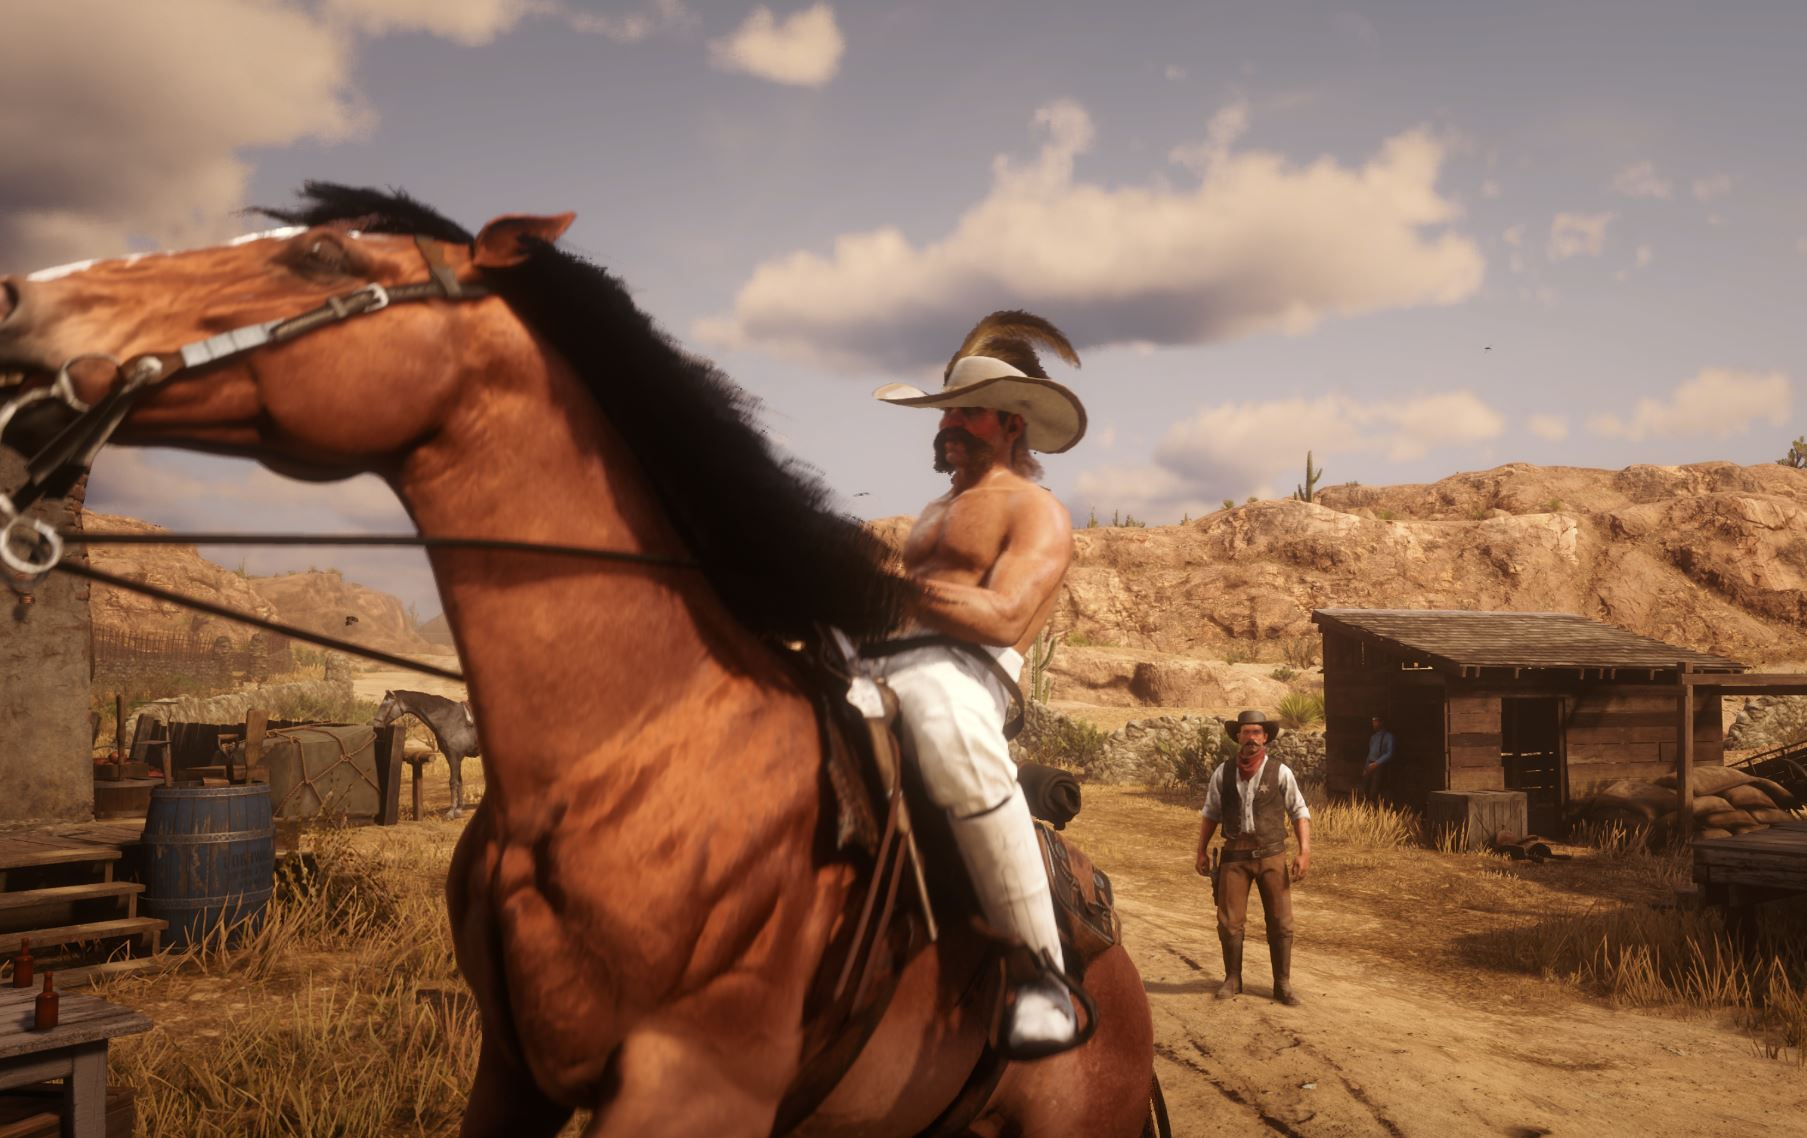 Enabling Motion Blur allows for object-based blur to be shown. Notice the blur on the bridle as the horse jerks around.